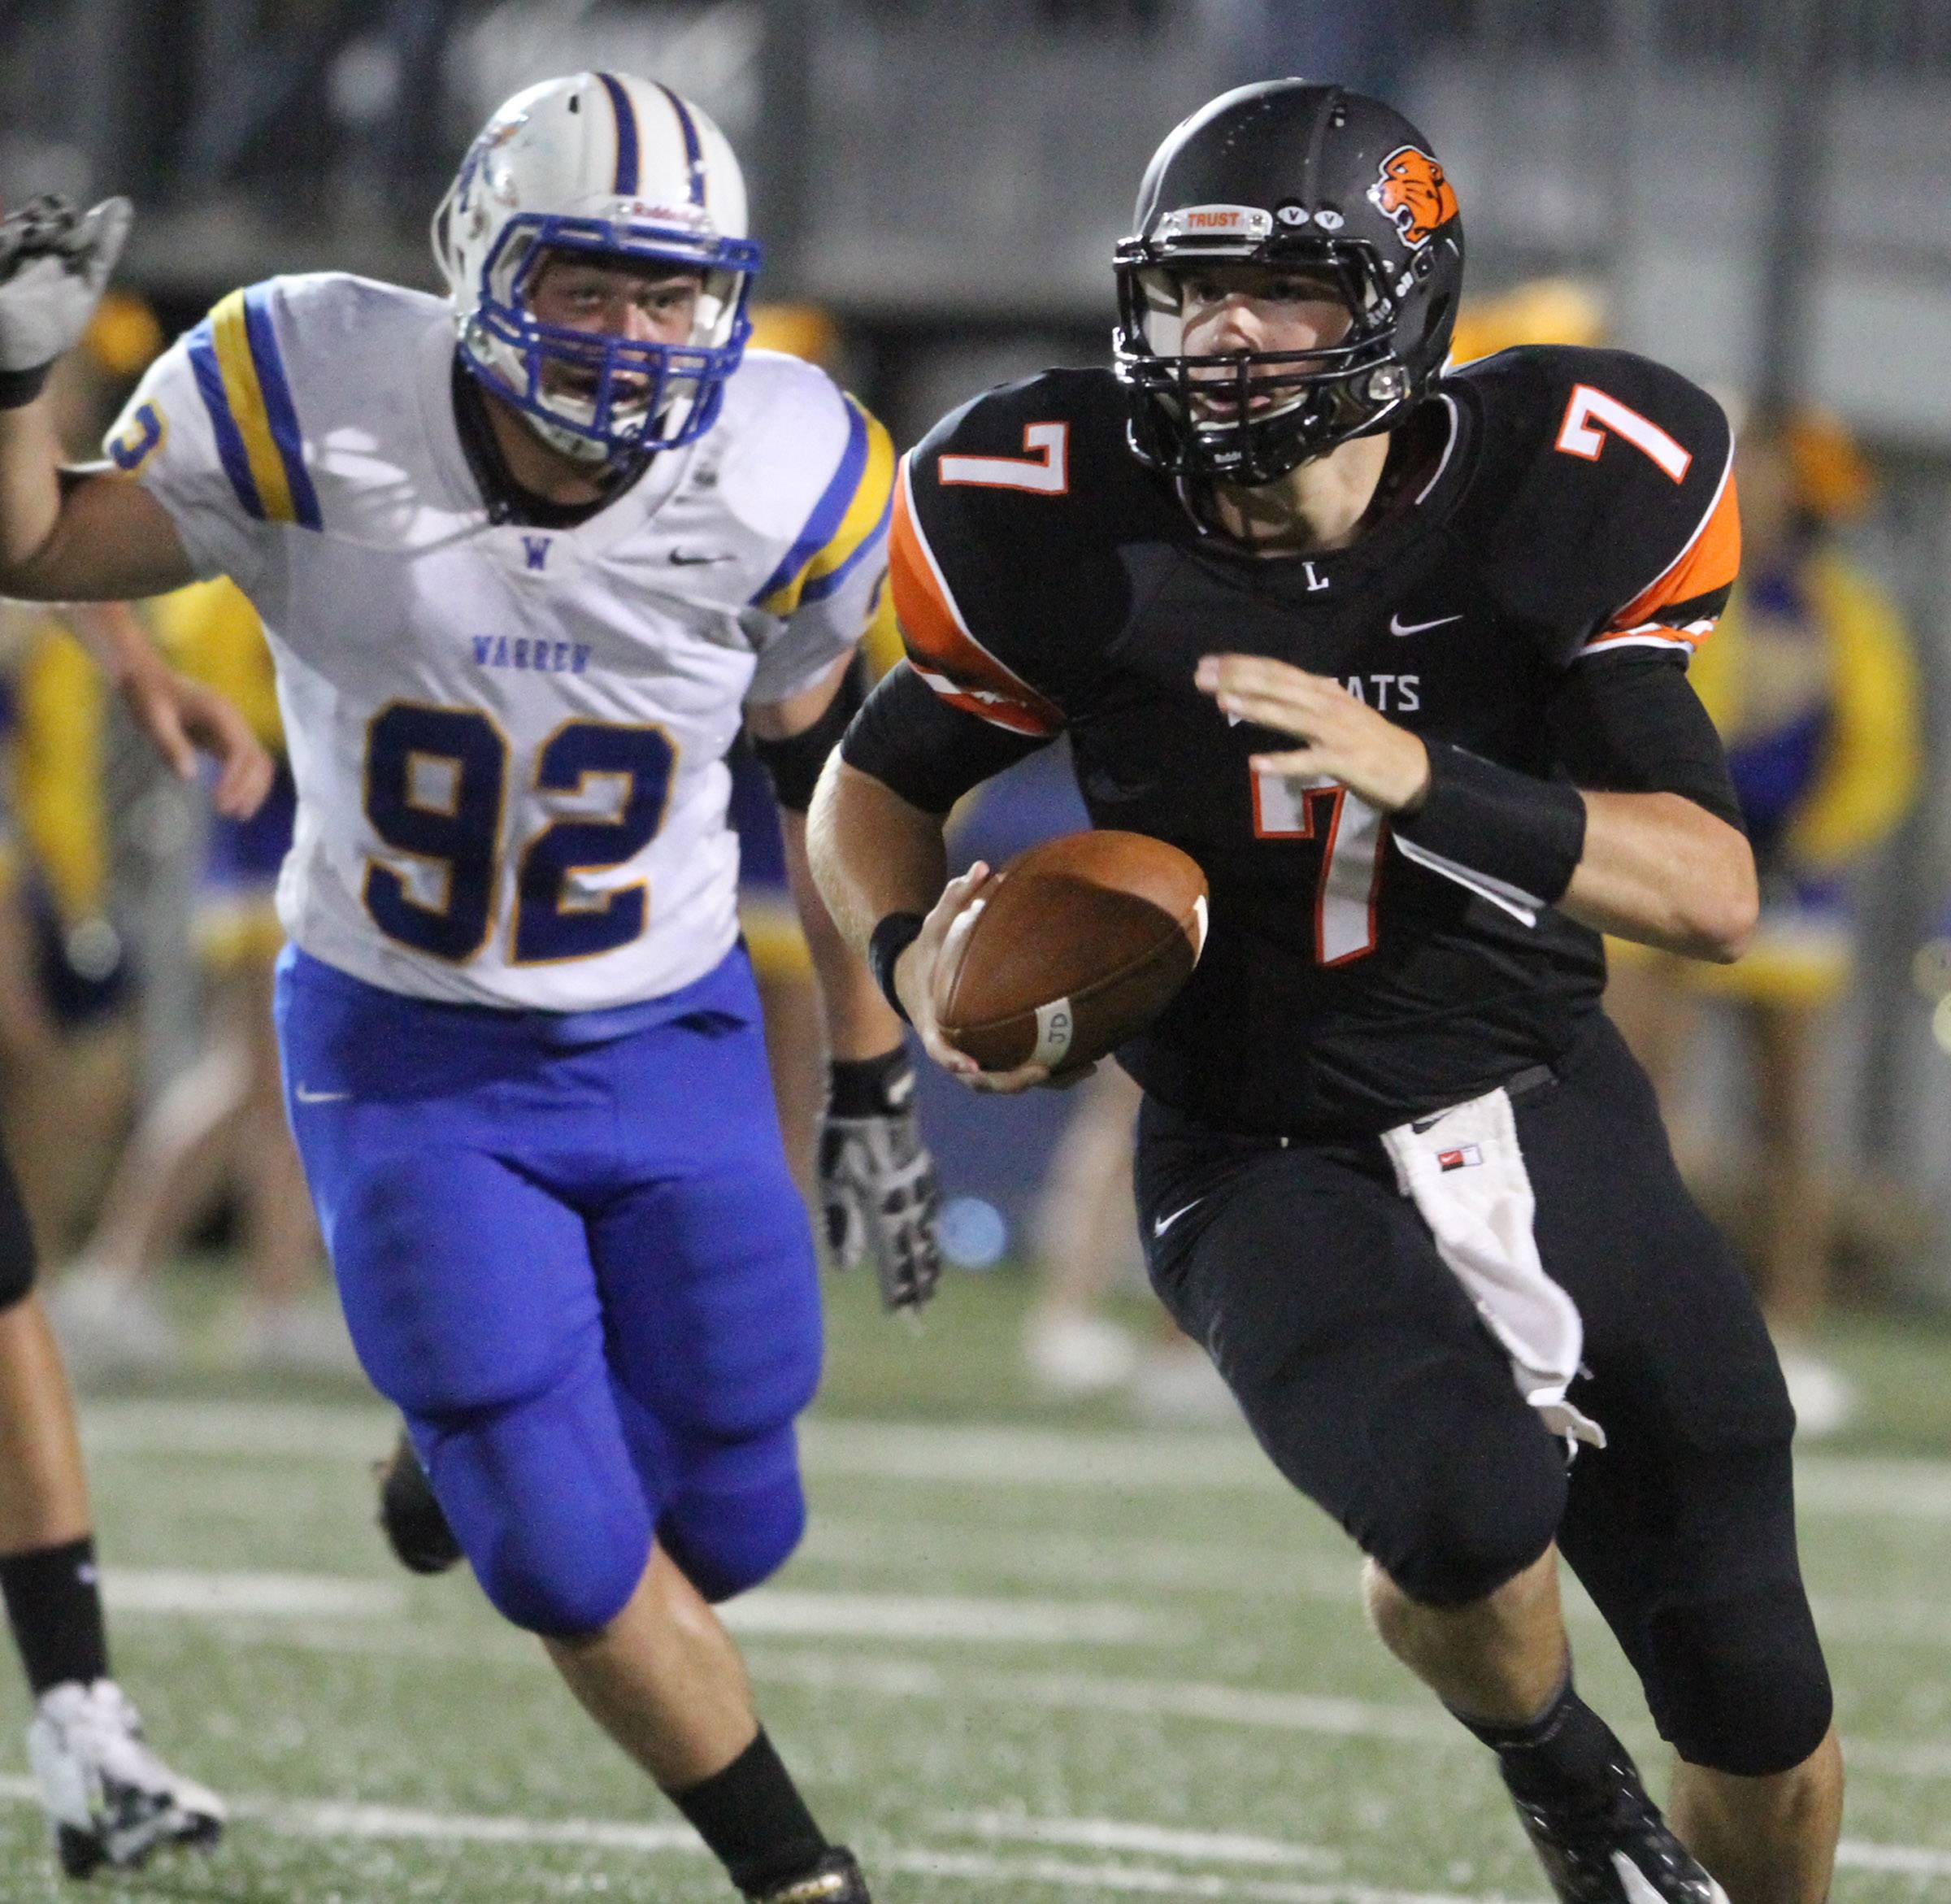 Libertyville's Jack Deichl, here playing QB and being pursued by Warren's Nick Orslini, is thriving as a tight end at Wisconsin-Whitewater.